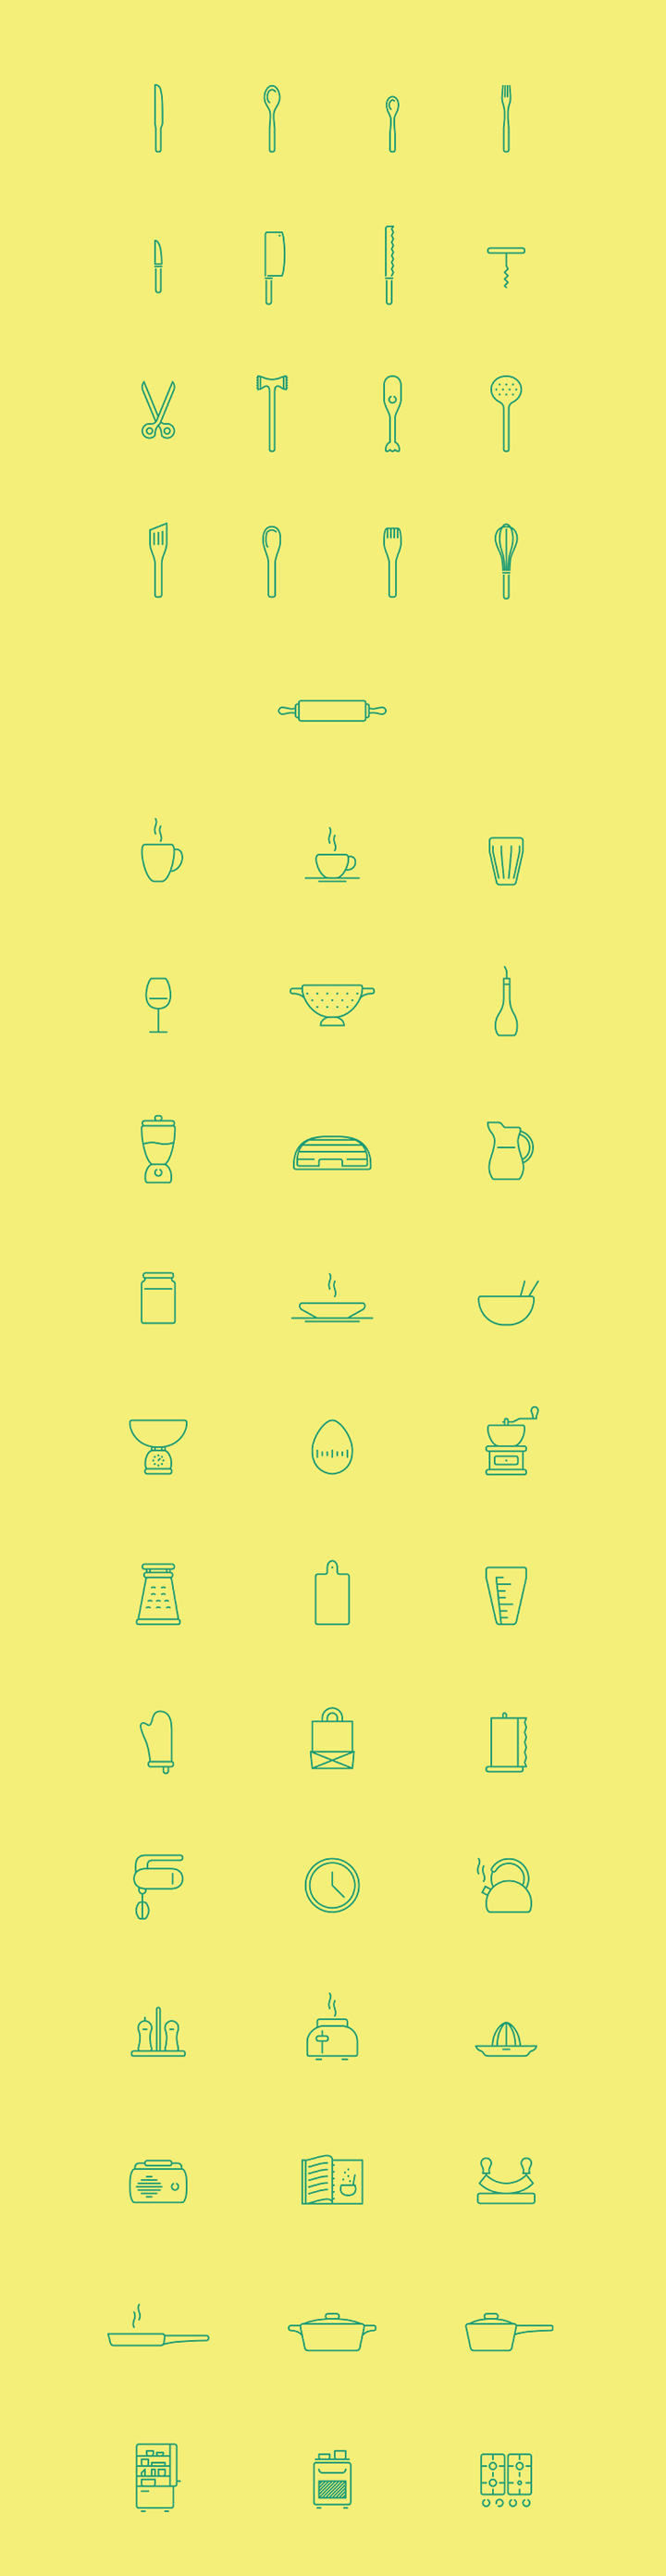 Free-Kitchen-Icons-720-1